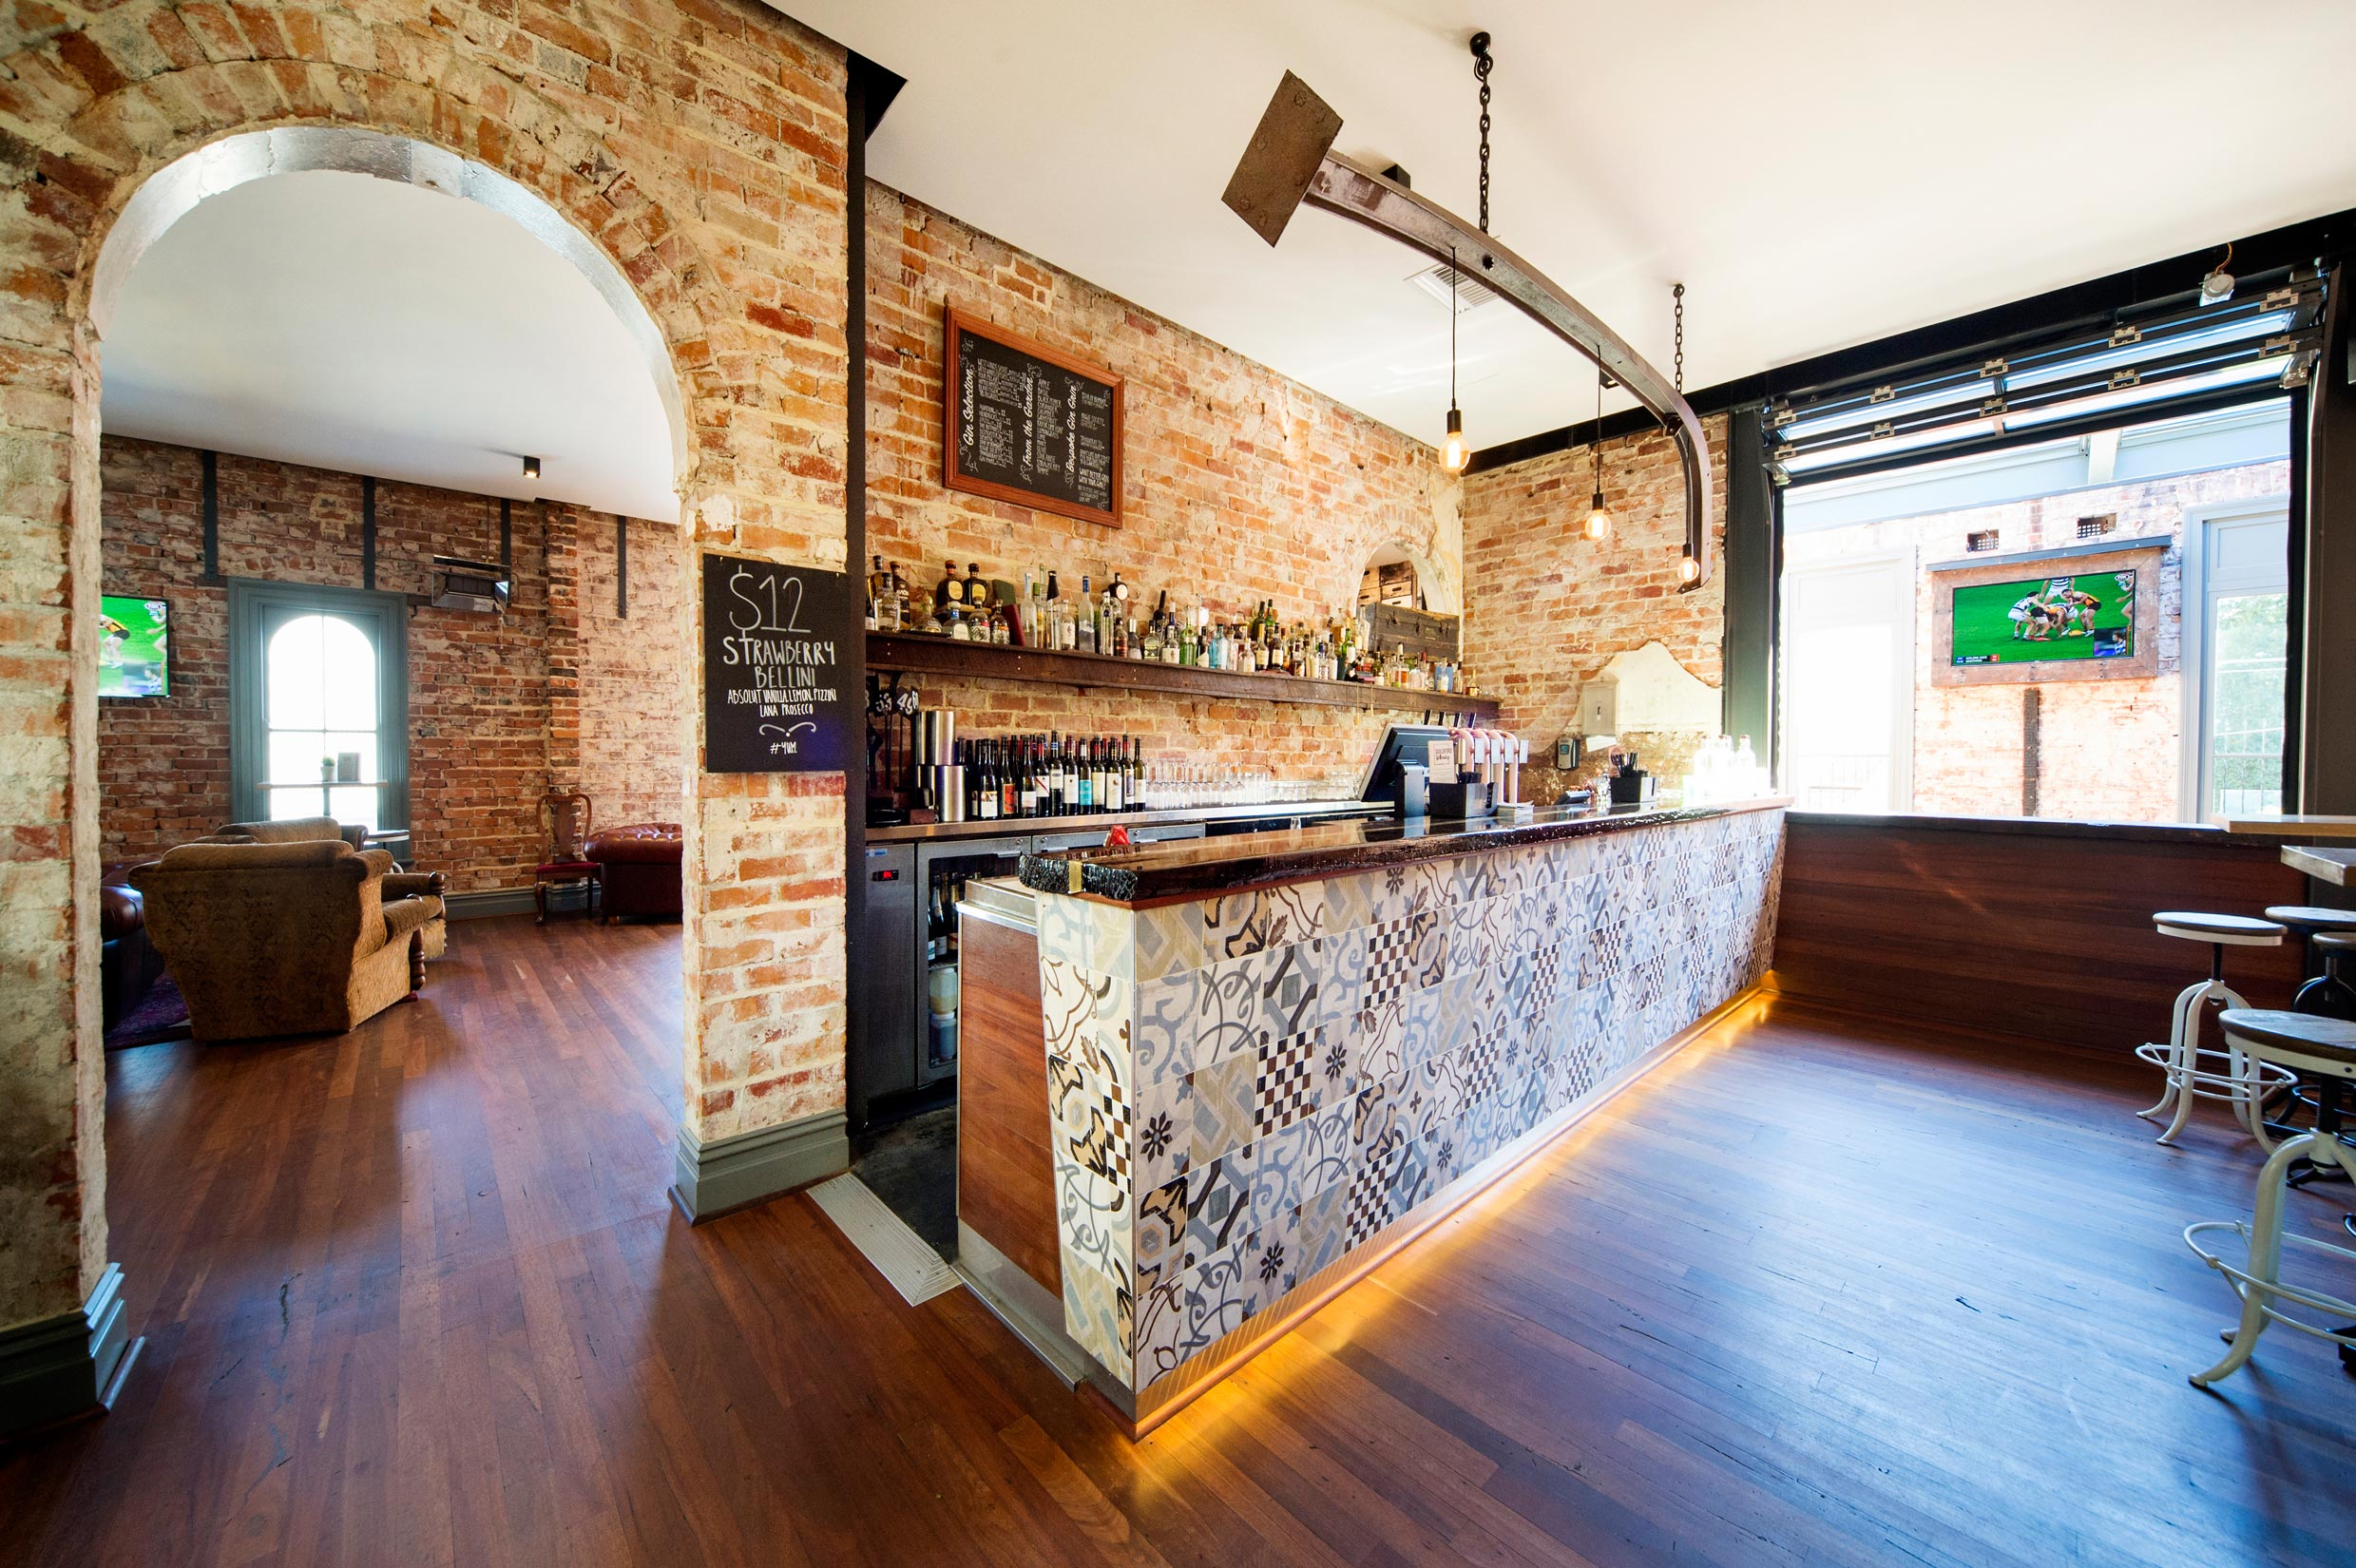 Upstairs bar at the Guildford Hotel with restored brick walls, coloured tiles on the bar, and suspended steel beam